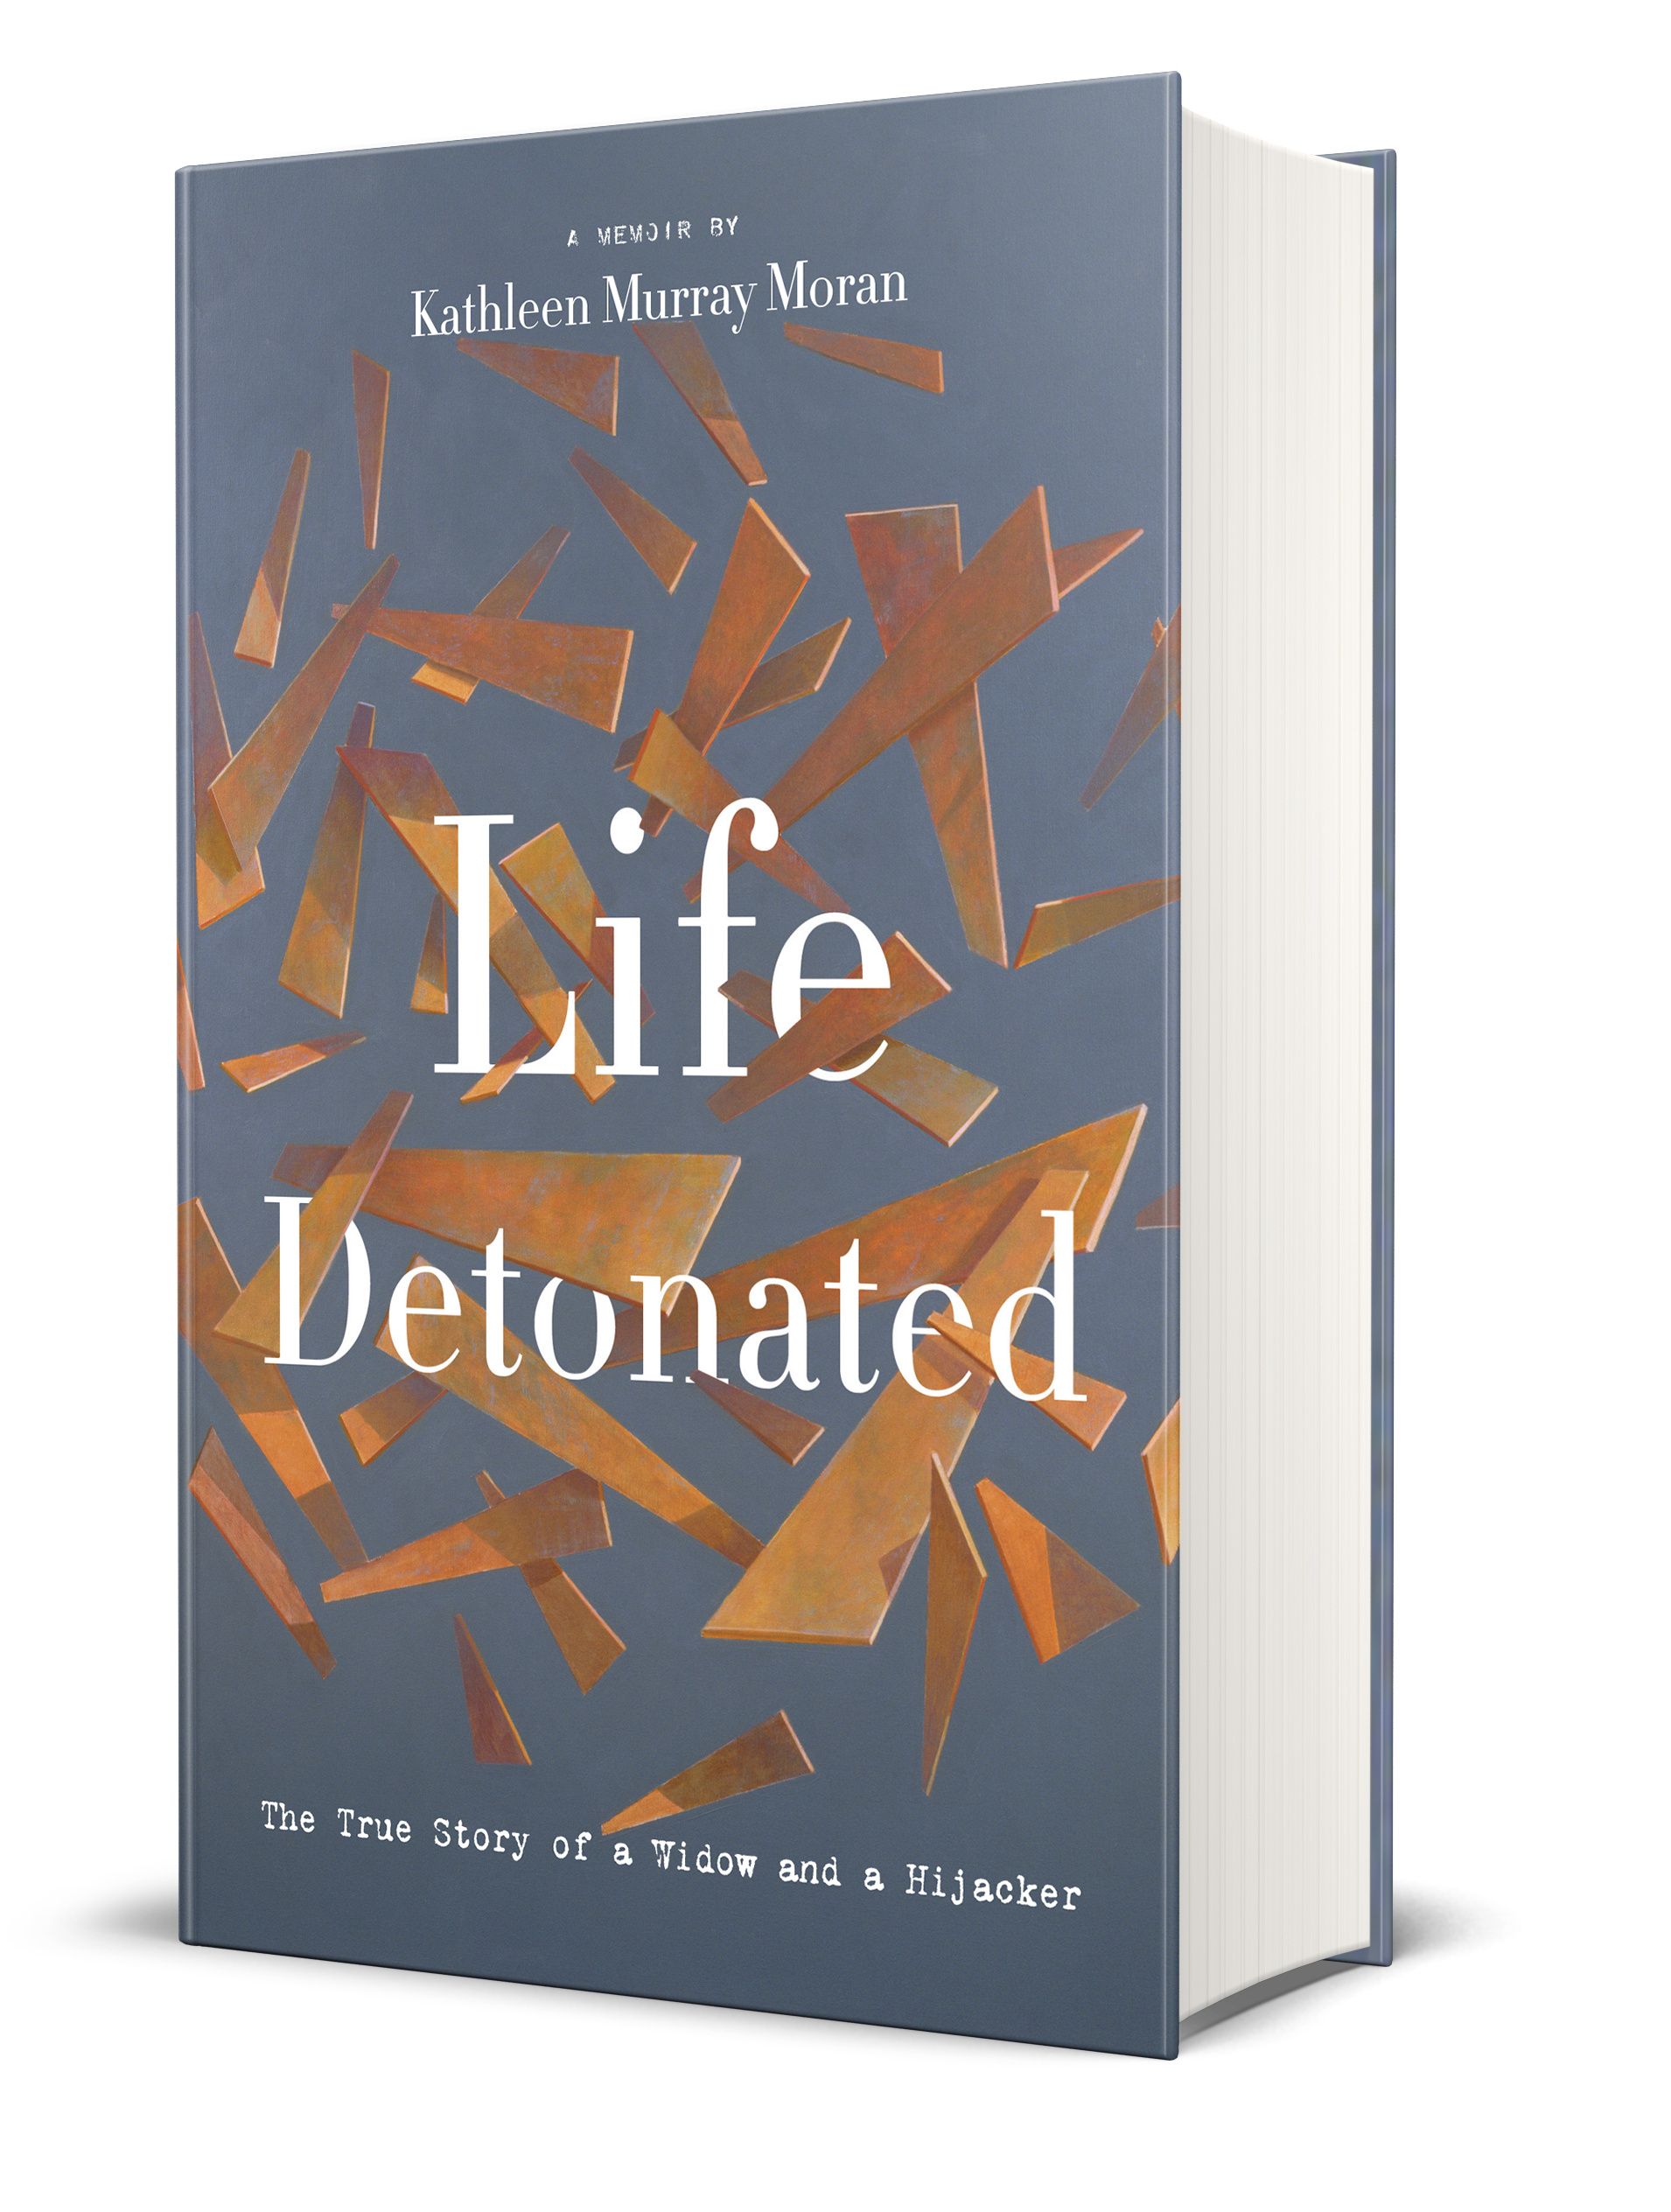 Life Detonated book cover, shards and pieces of wood in various sizes being thrown around the cover